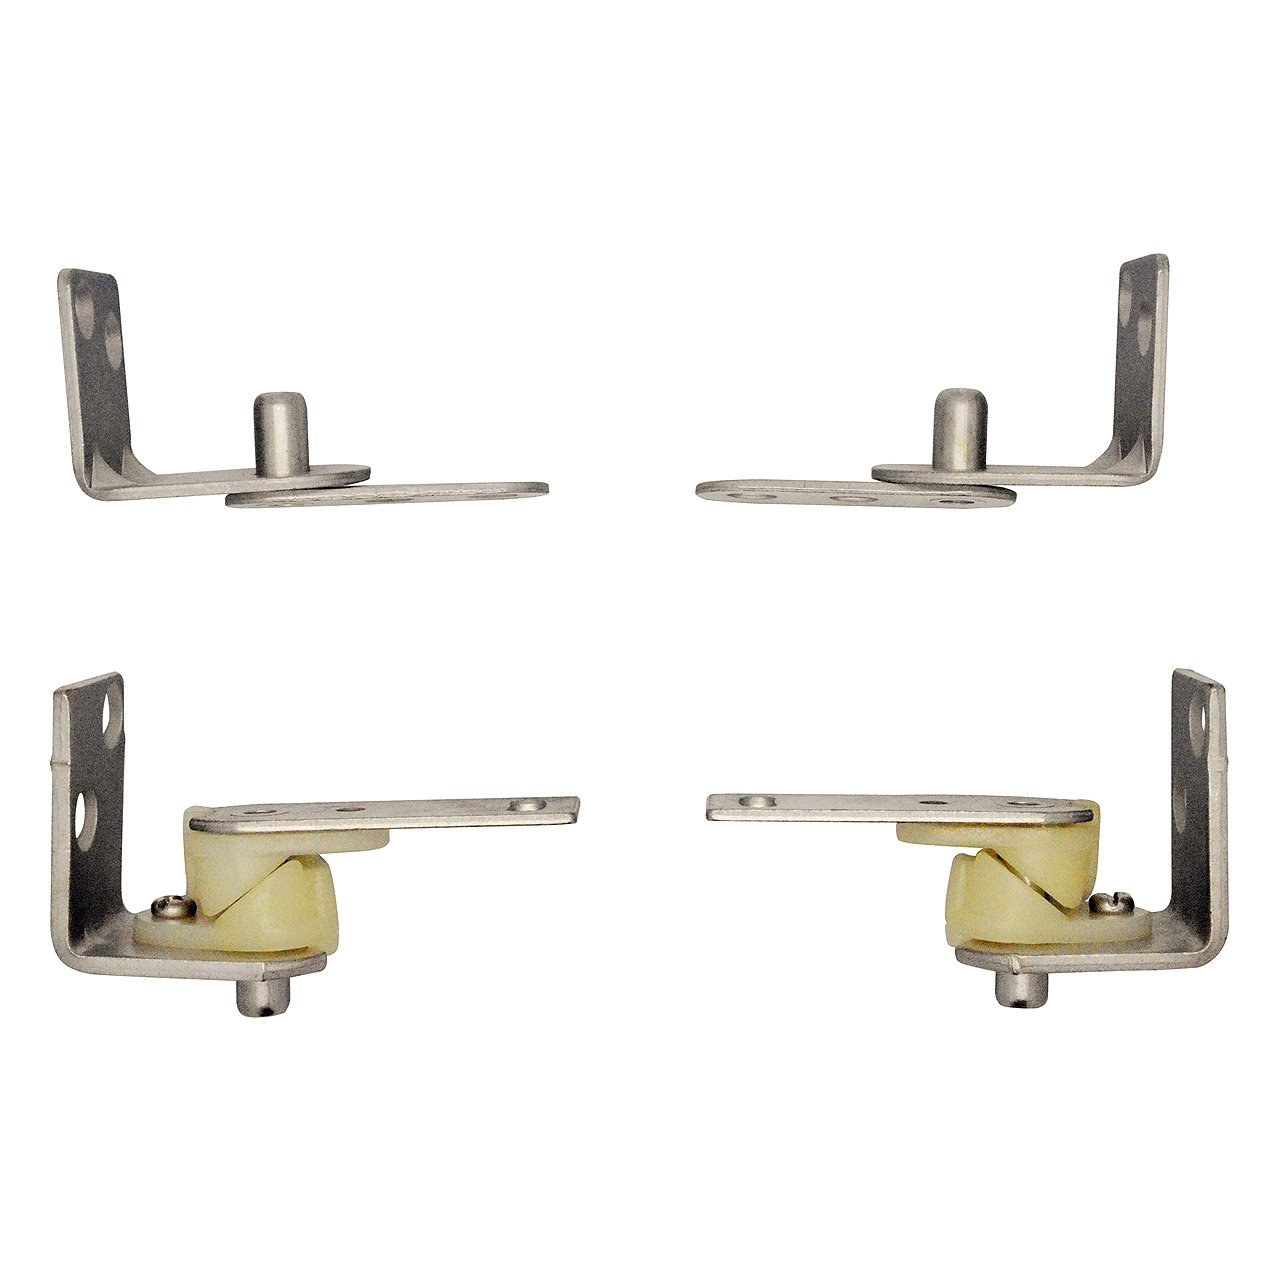 polished plates amazon in duty com brass finish with swinging steel plated dp hardware door floor hinge cover standard swing